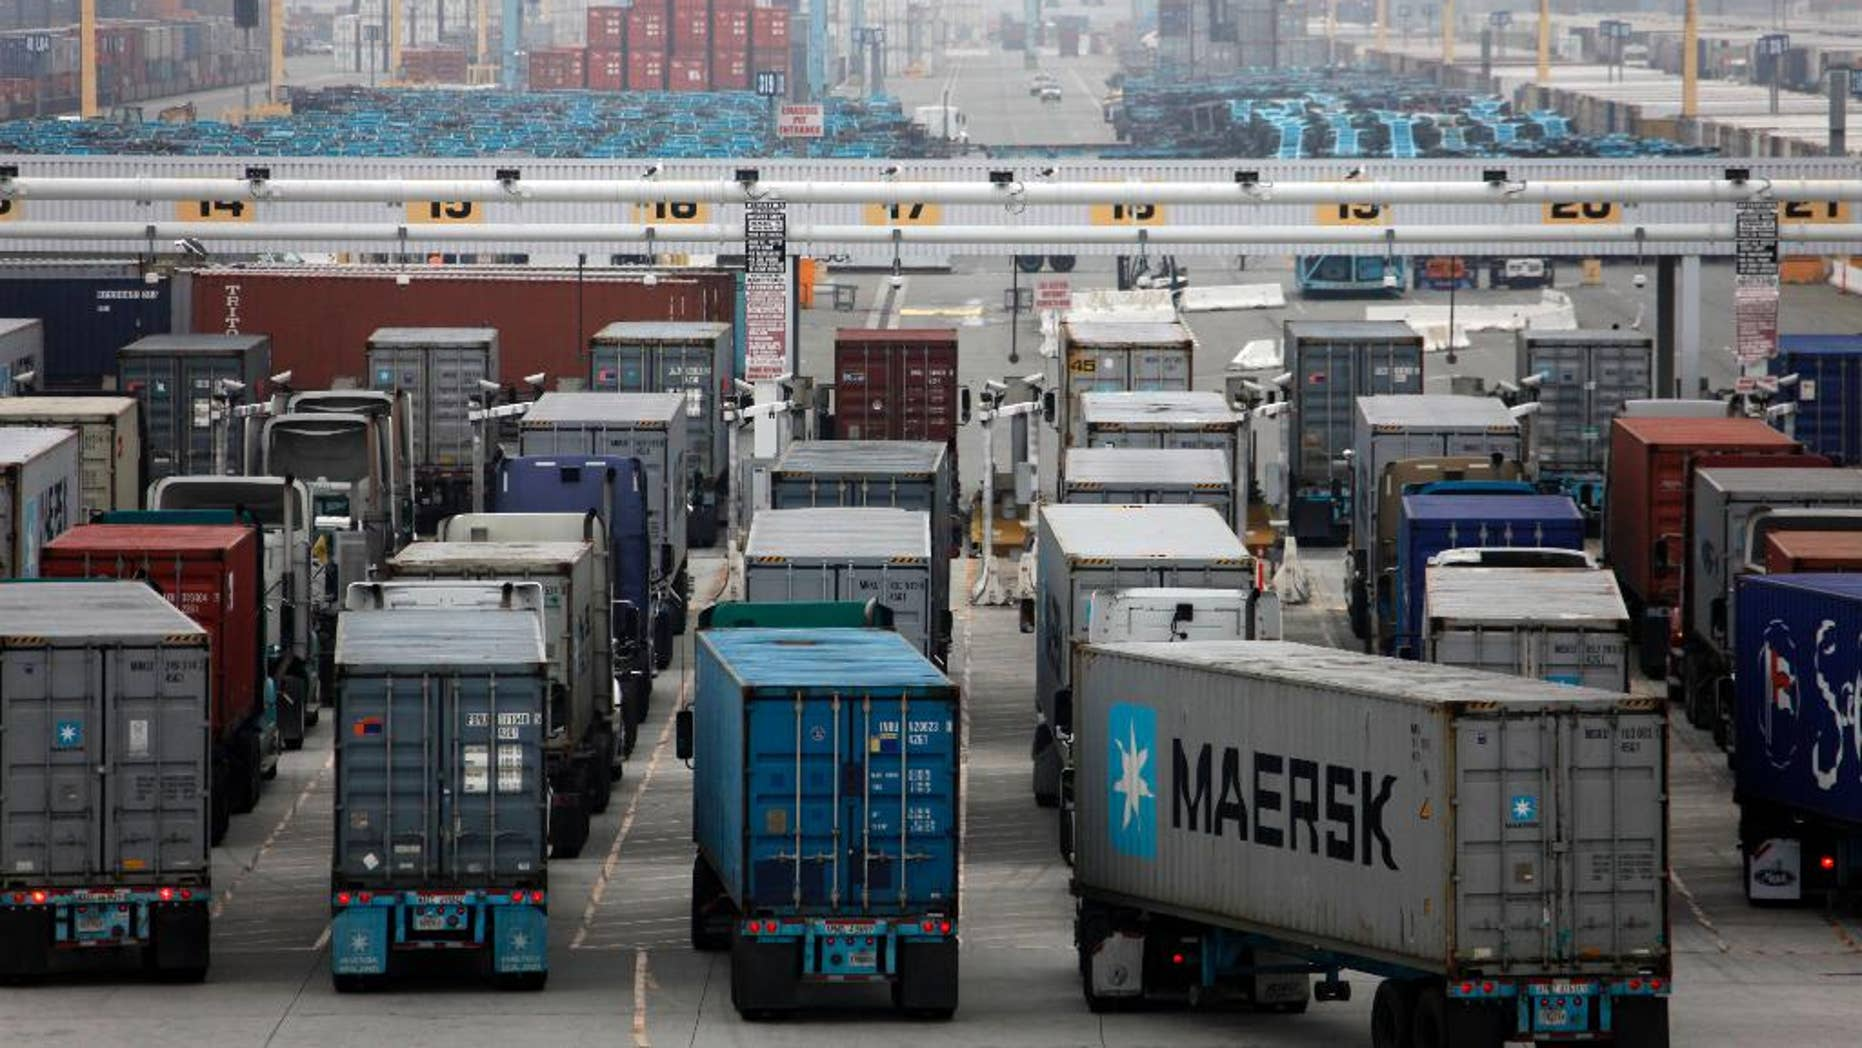 FILE - This Dec. 5, 2014, file photo, shows trucks lined up at the Port of Los Angeles in Los Angeles. The Commerce Department reports on the U.S. current account trade deficit for the October-December quarter on Thursday, March 19, 2015. (AP Photo/Nick Ut, File)